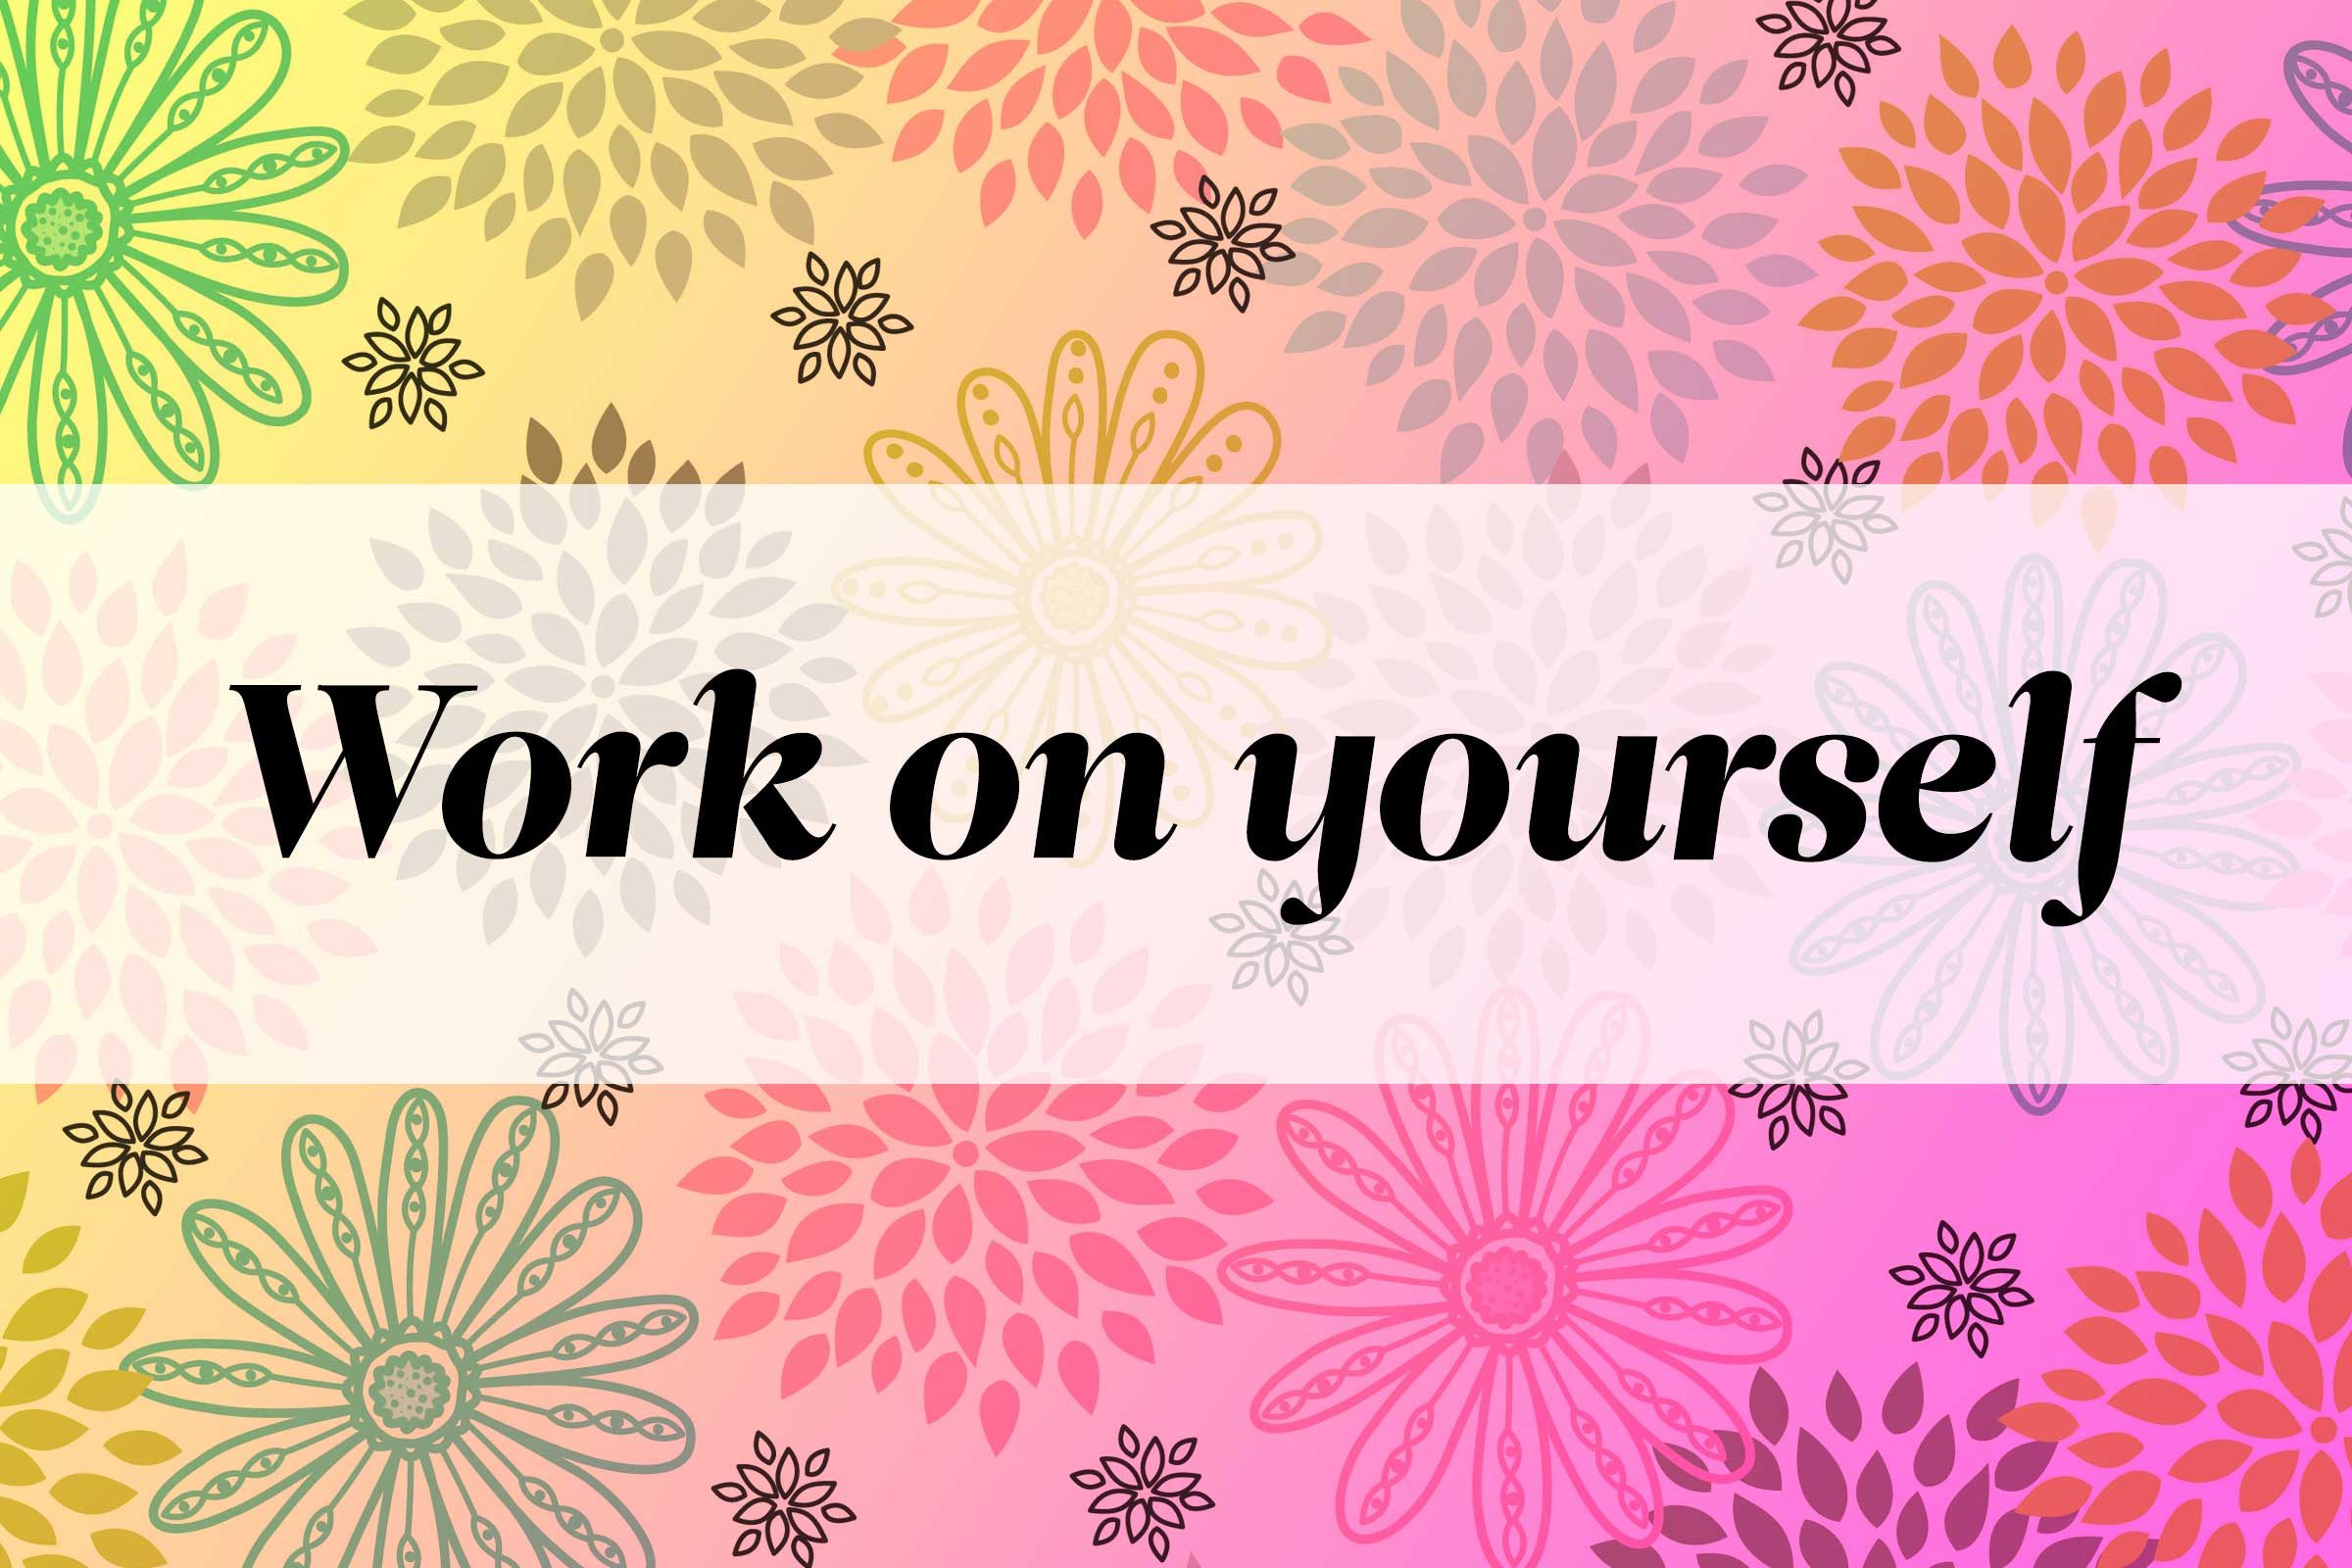 Work to improve yourself